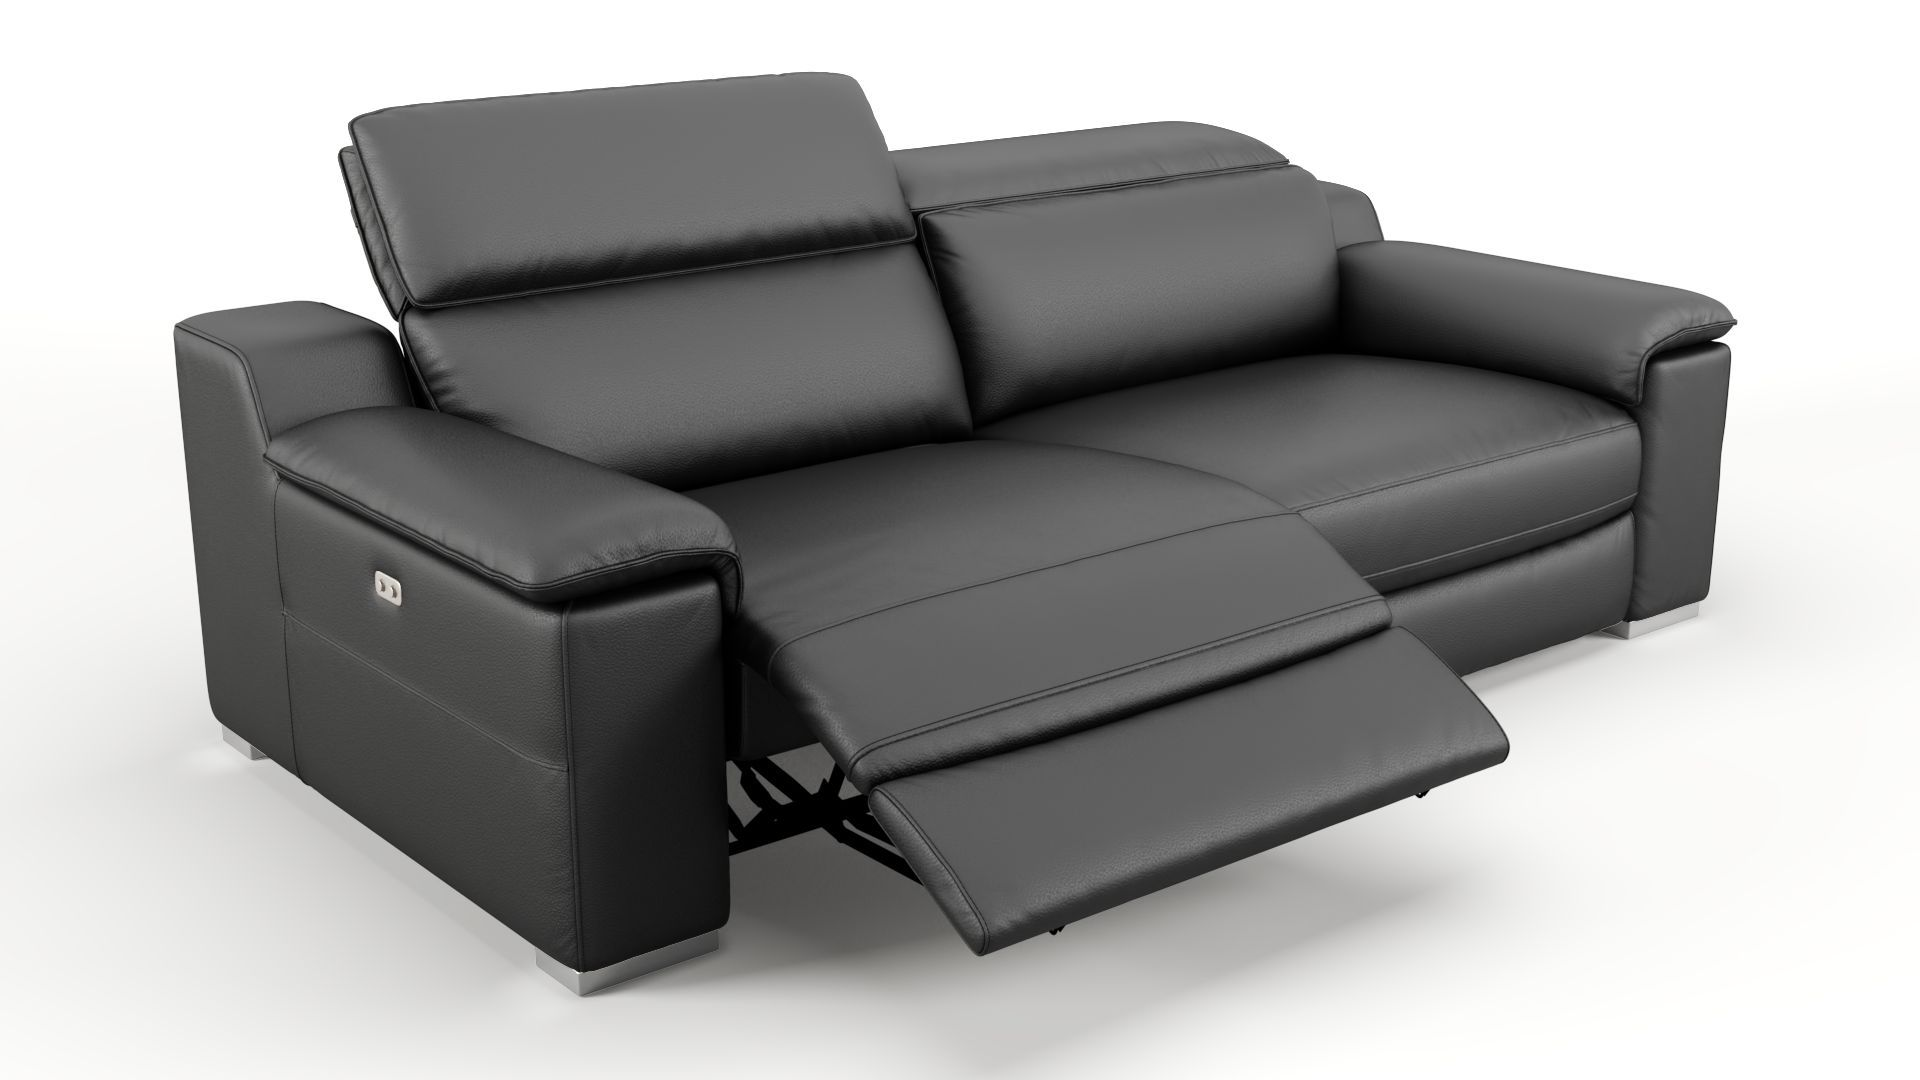 Designer couch 3 sitzer sofa mit relaxfunktion for 3 sitzer sofa mit relaxfunktion